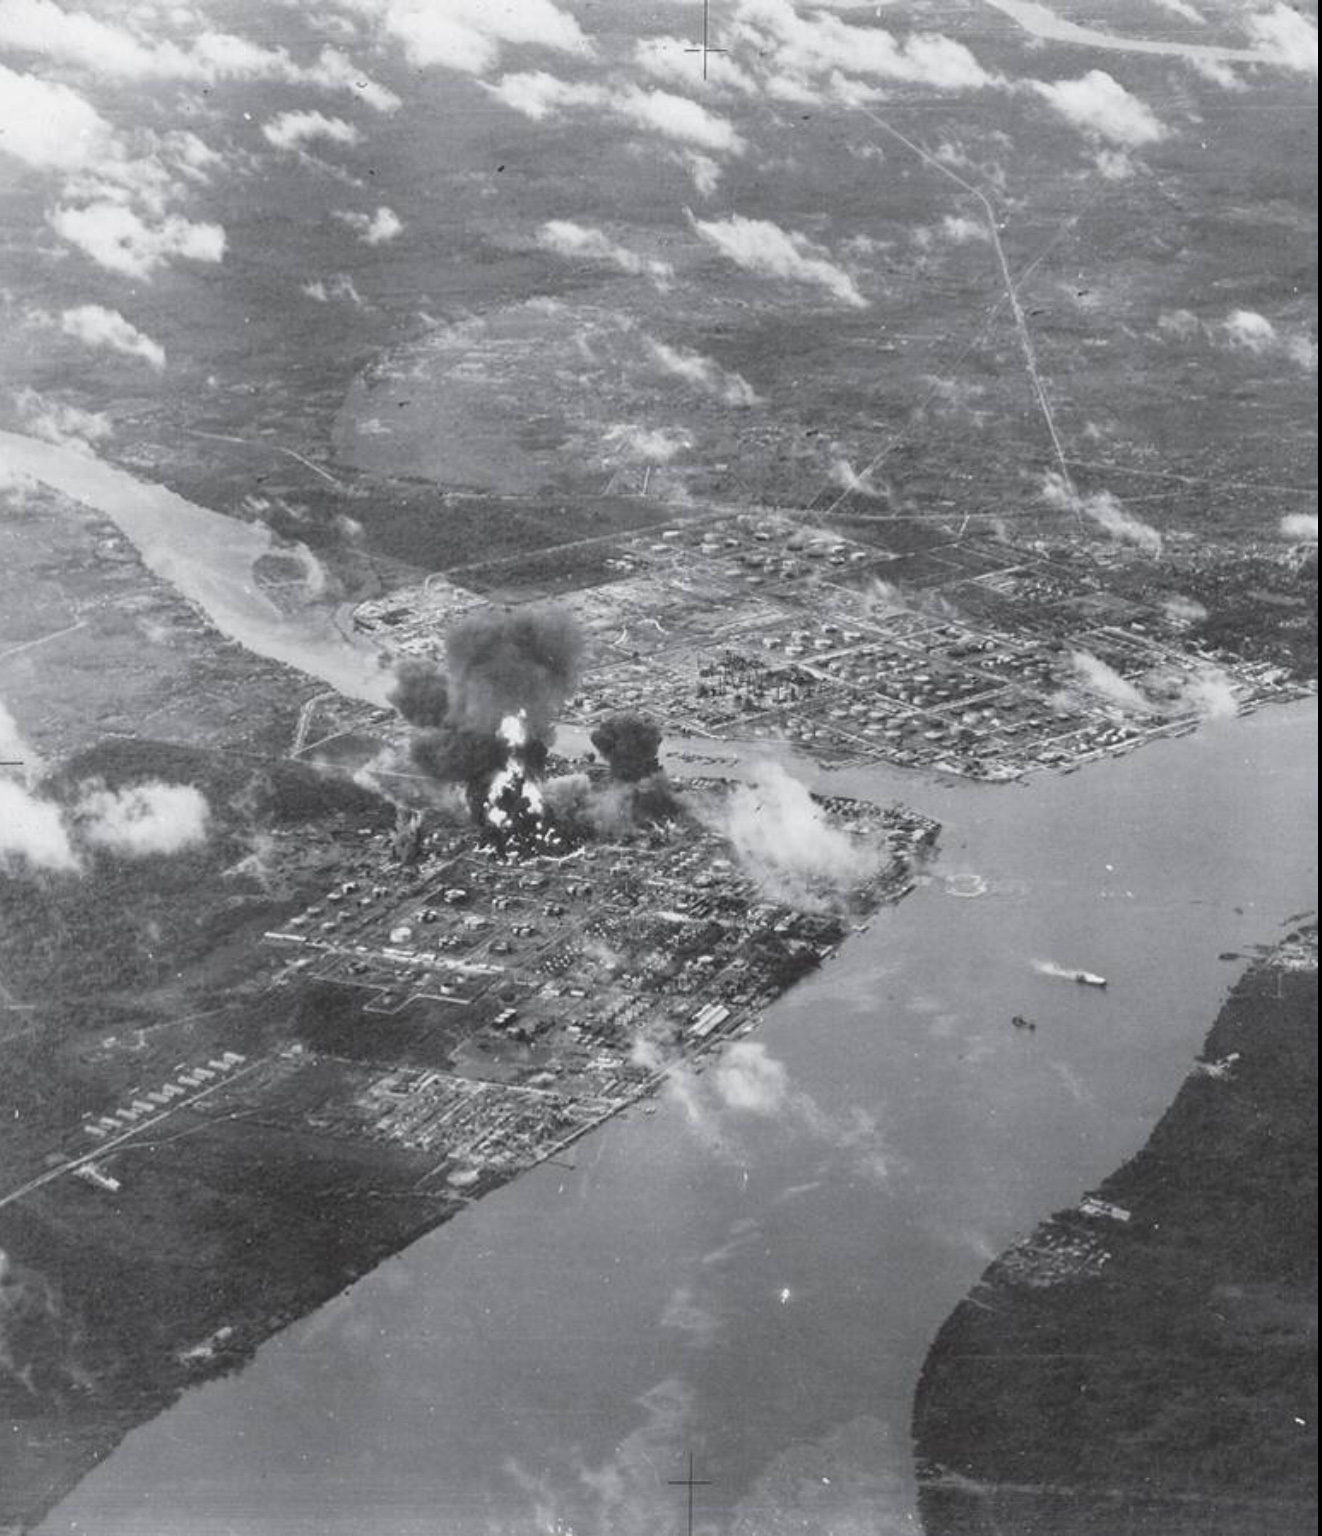 This reconnaisance photo taken from Major Hay's Corsair shows bombs bursting within Songei Gerong refinery during Operation Meridian II. A tanker is burning in the river, middle-right.